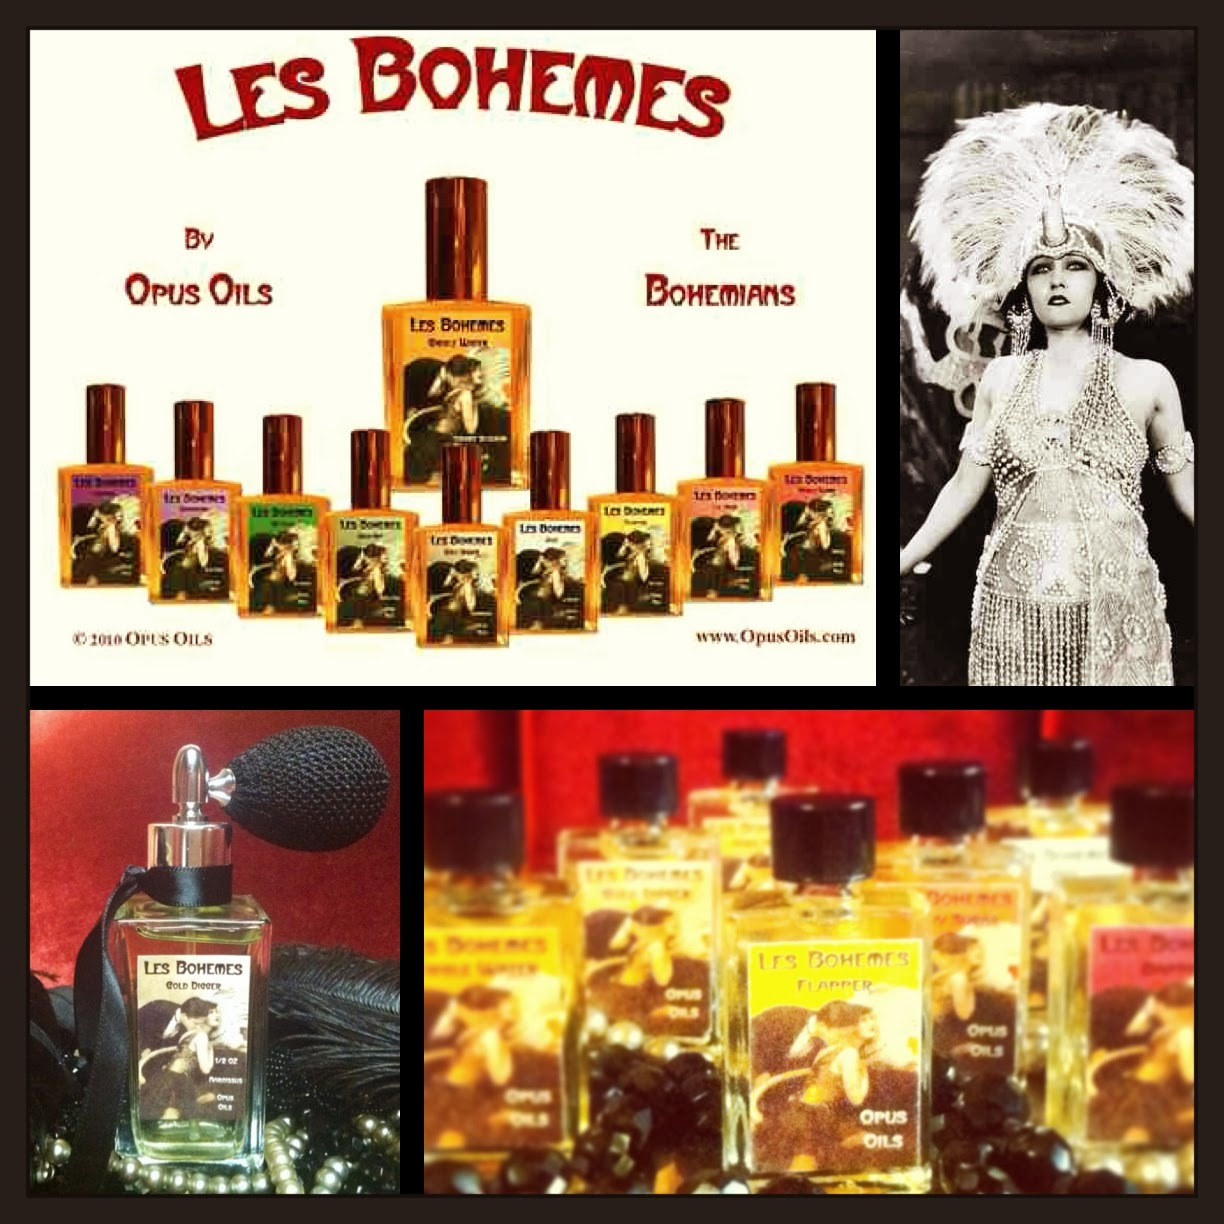 LES BOHEMES COLLECTION